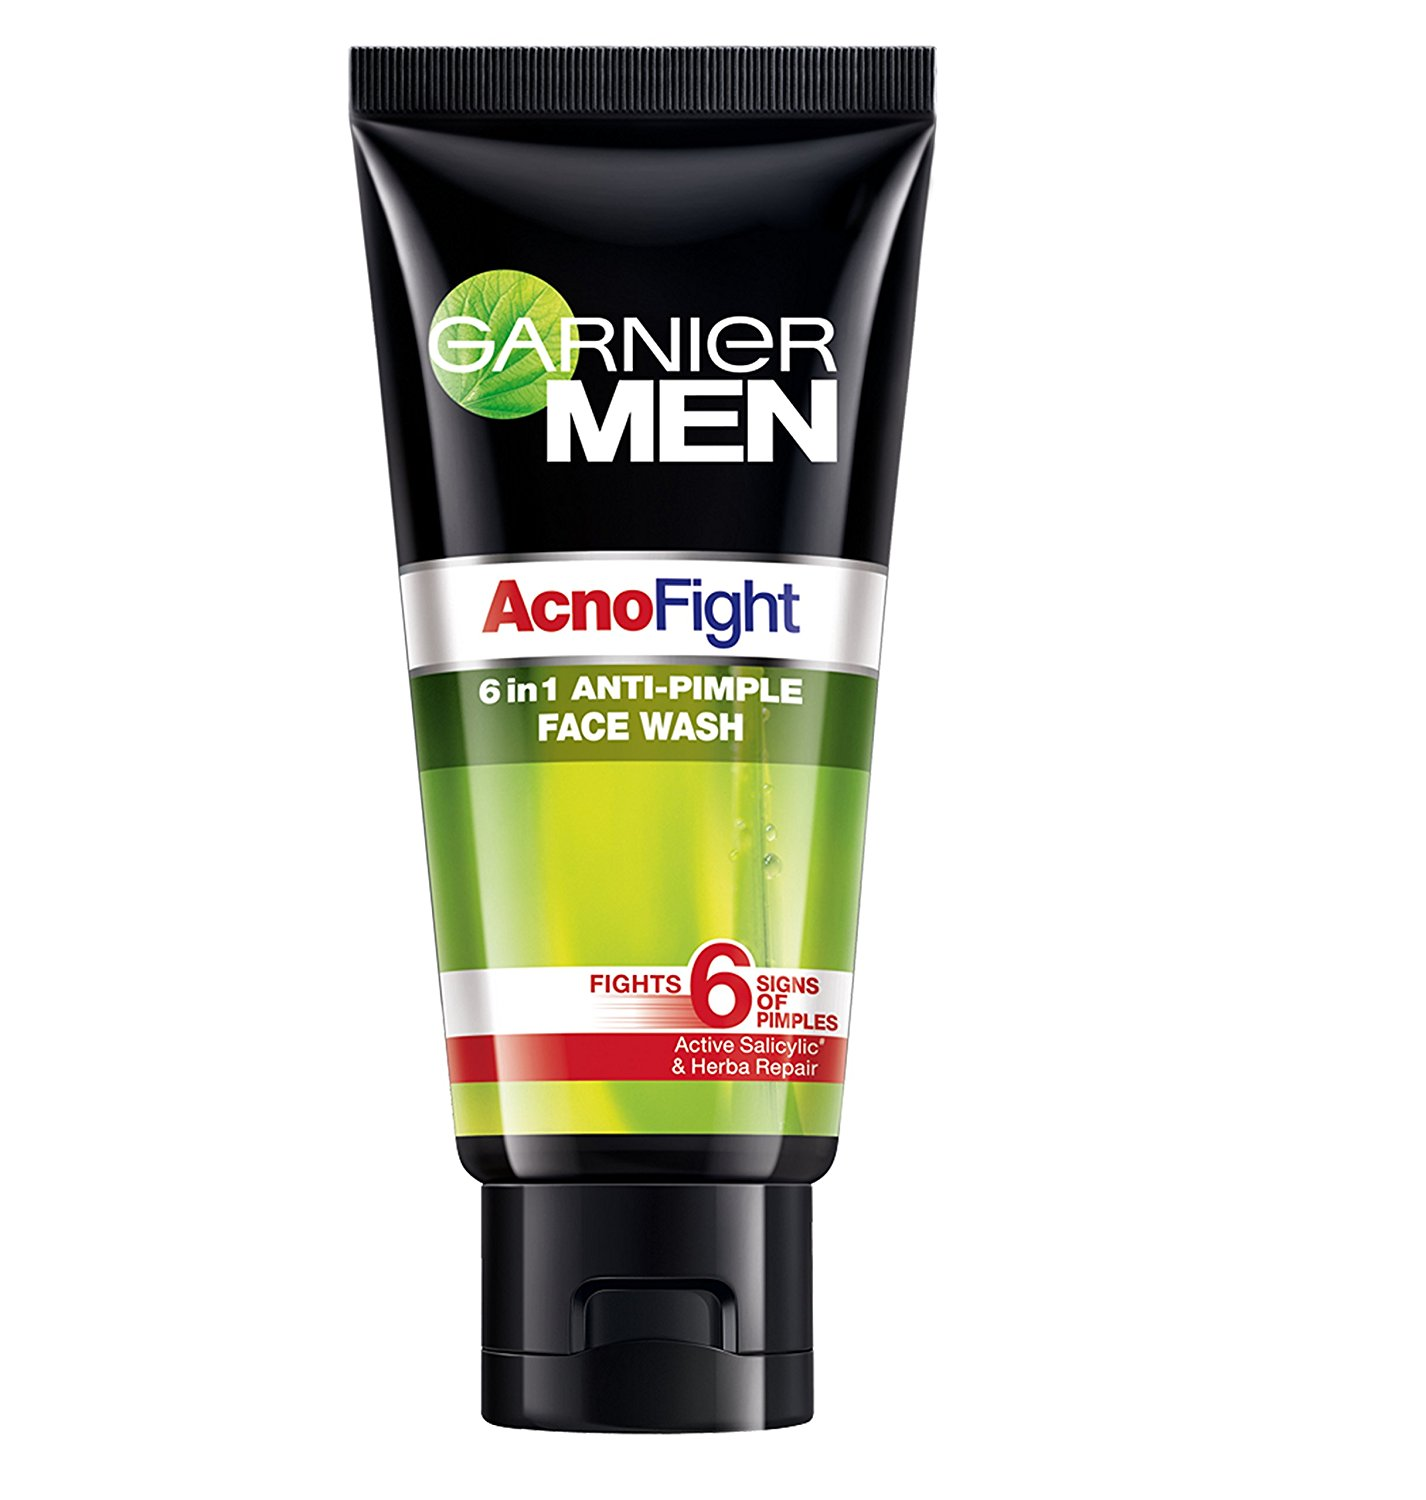 Cheap New Garnier Face Wash Find Deals On Pure Active Acne Oil Clearing 100ml Get Quotations For Men Acnofight 50g